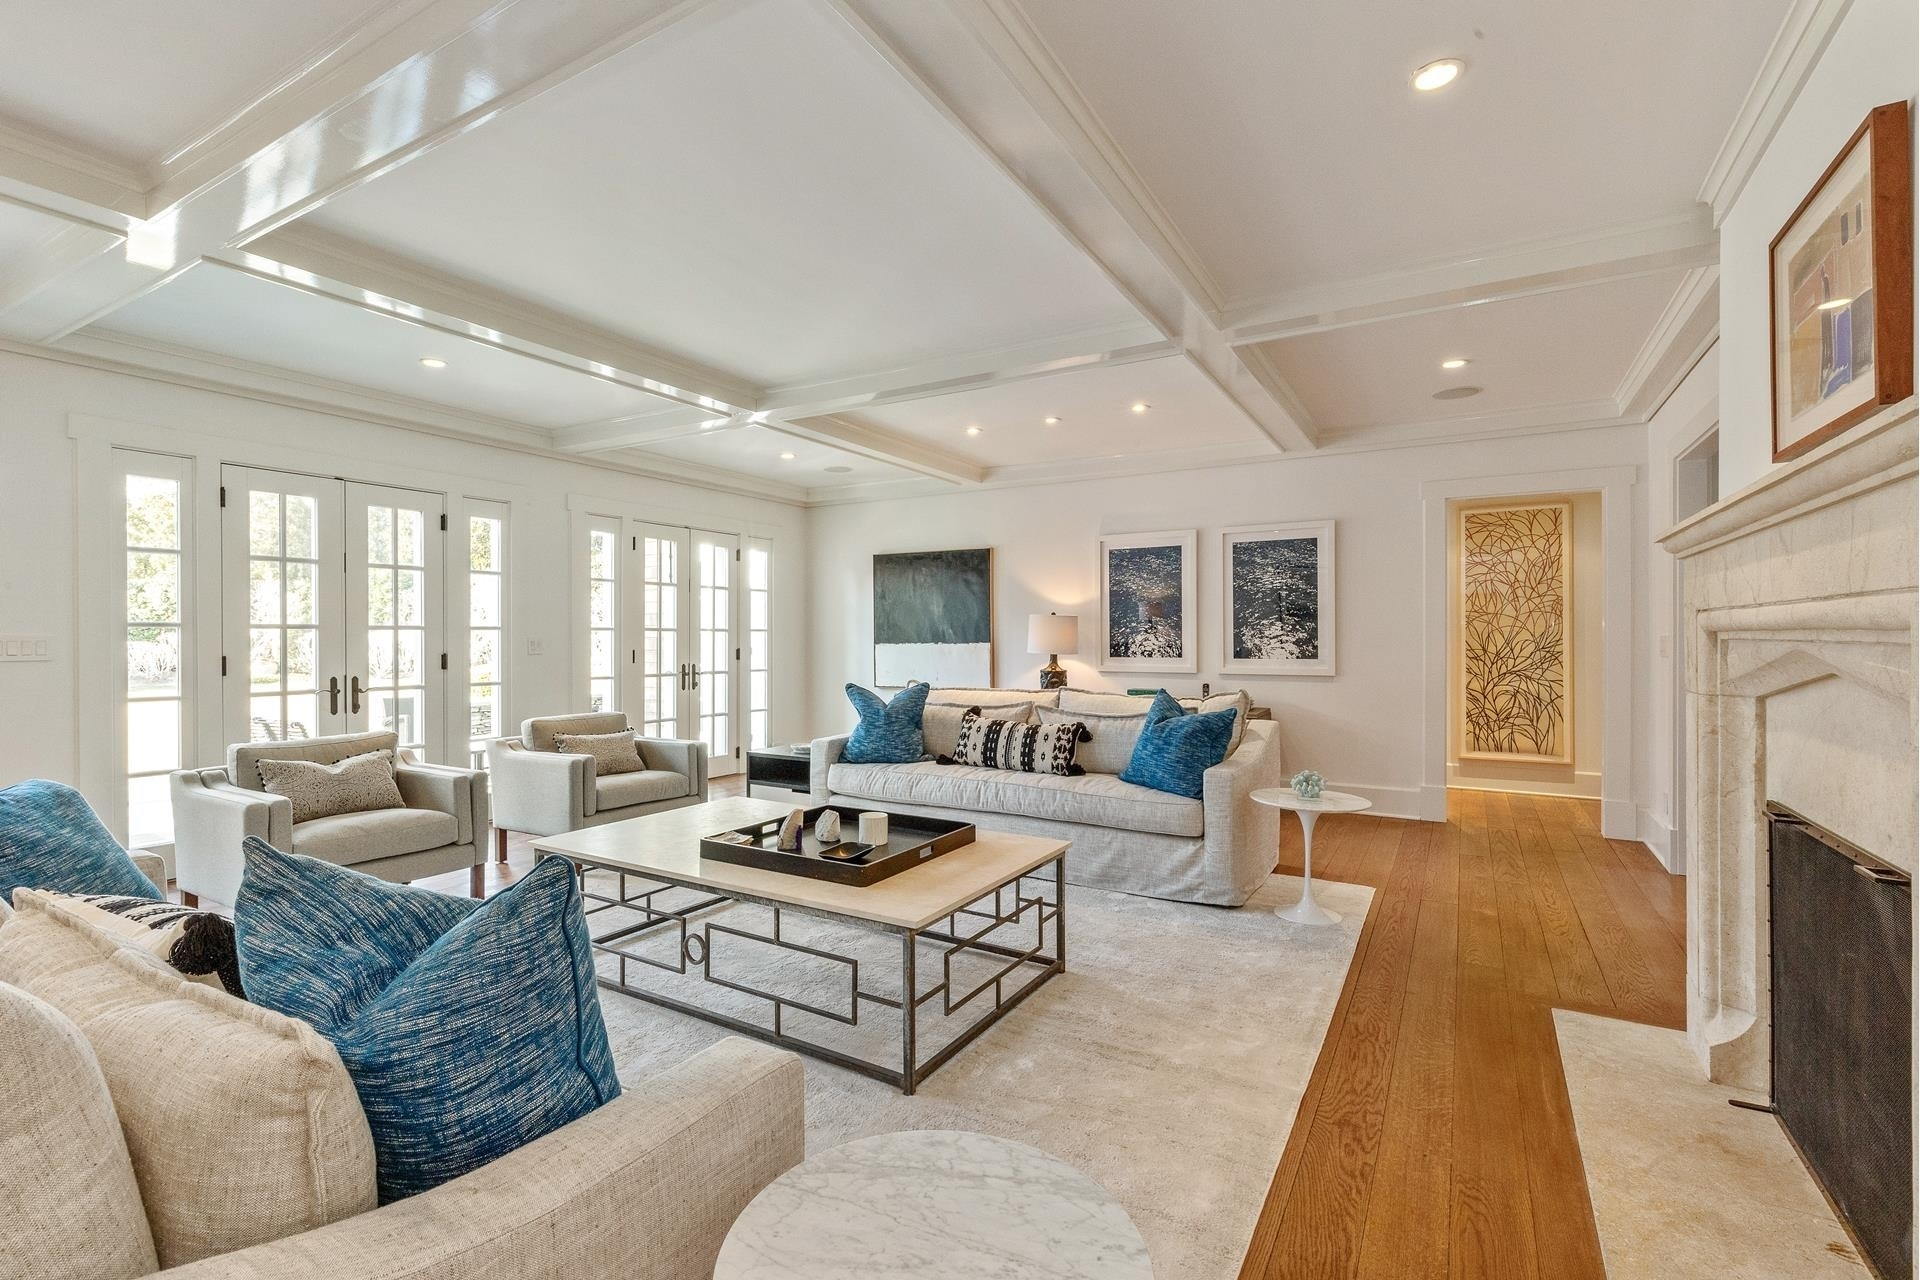 Single Family Home at East Hampton South, East Hampton, NY 11937